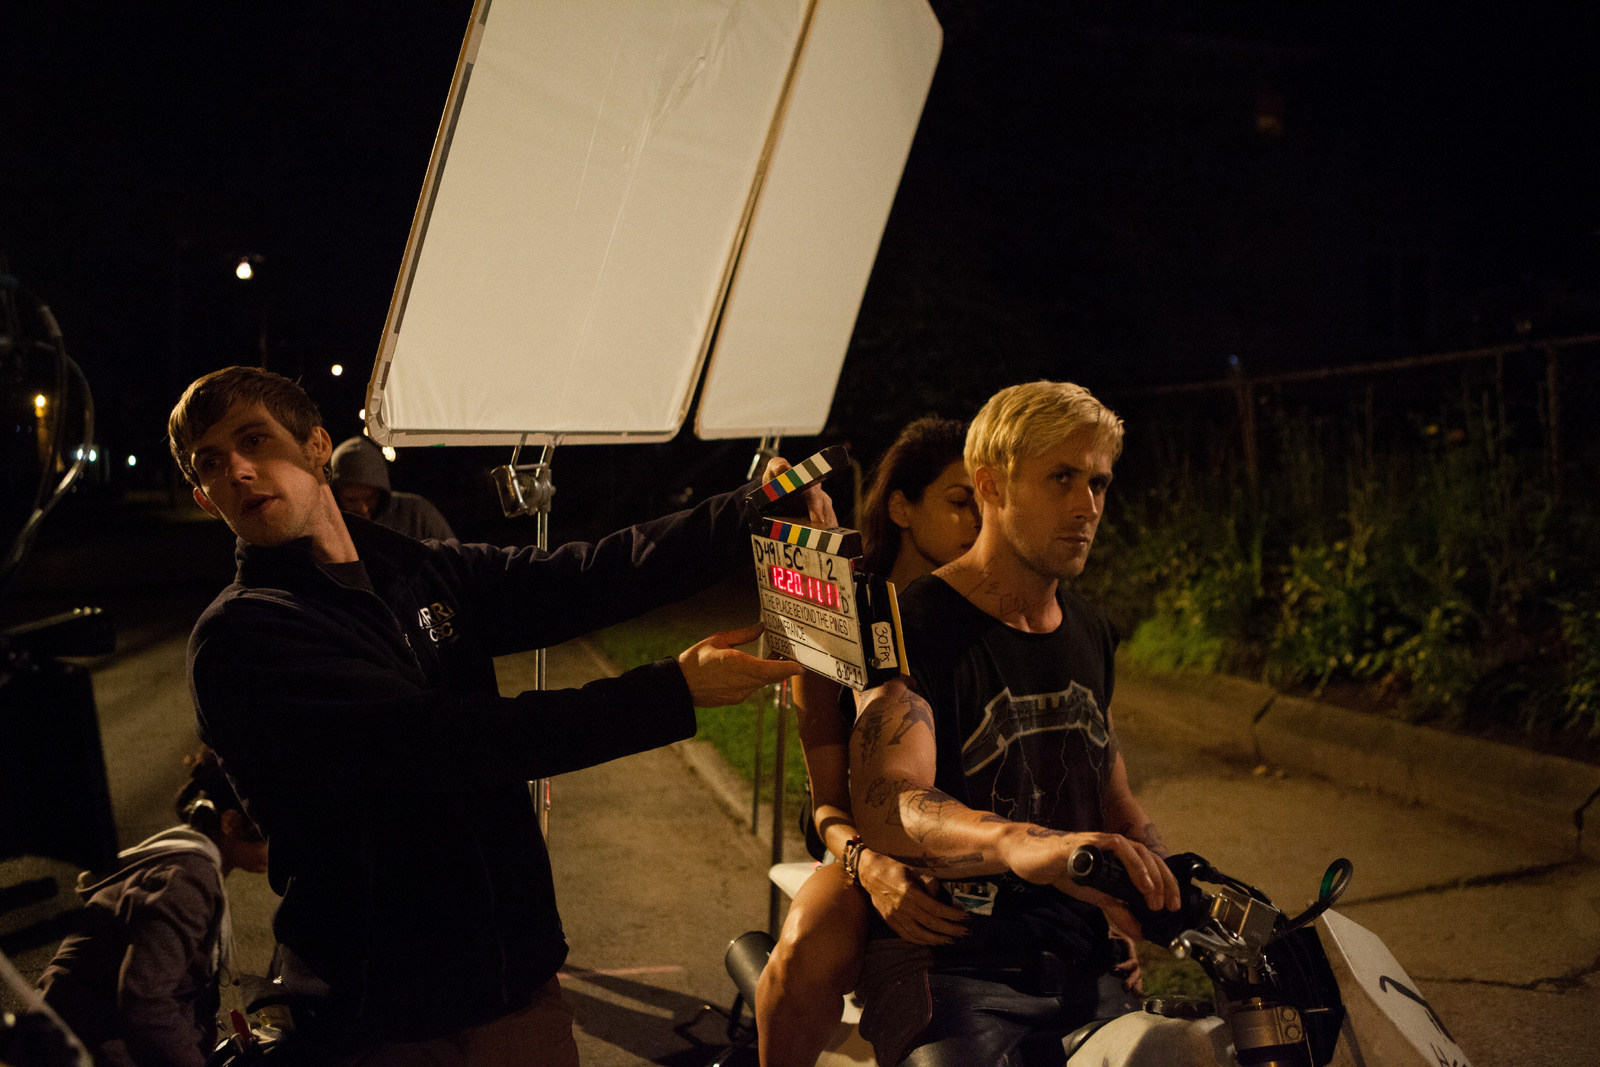 The Place Beyond the Pines Behind the Scenes Photos & Tech Specs